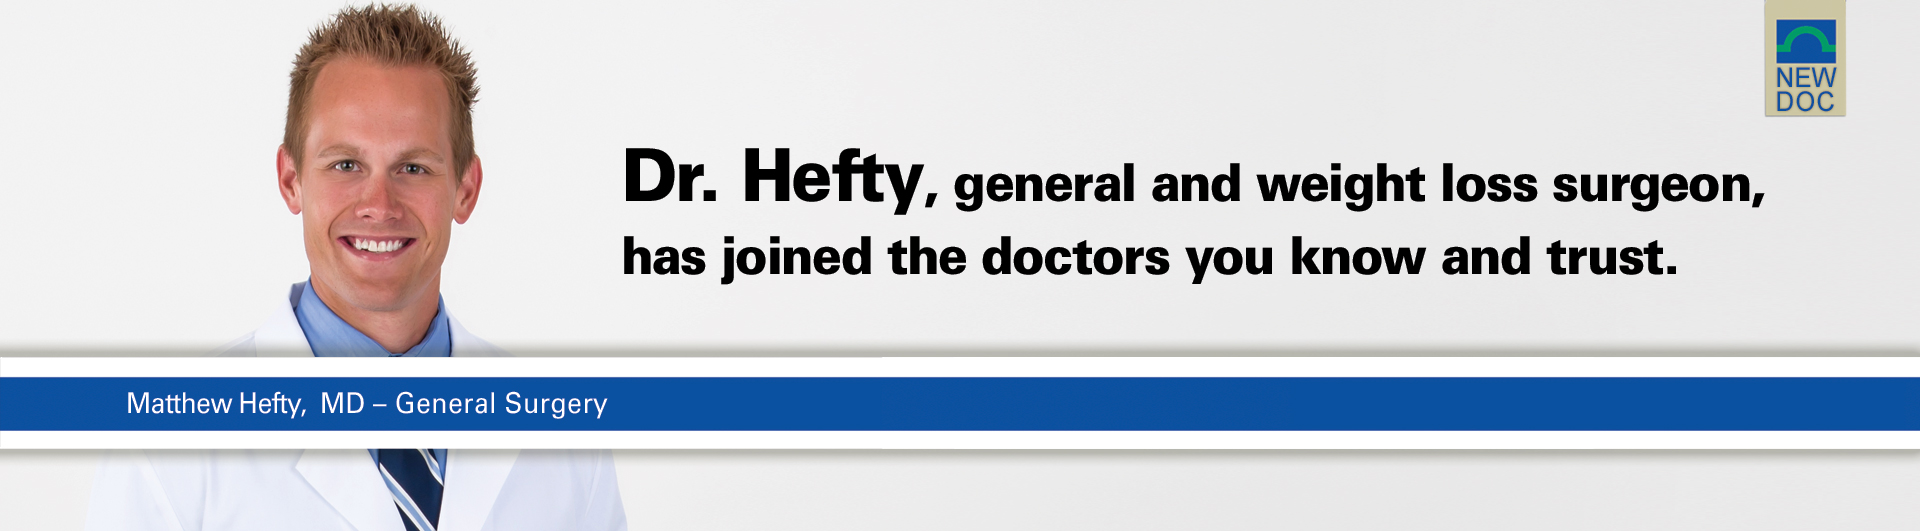 Matthew Hefty, MD